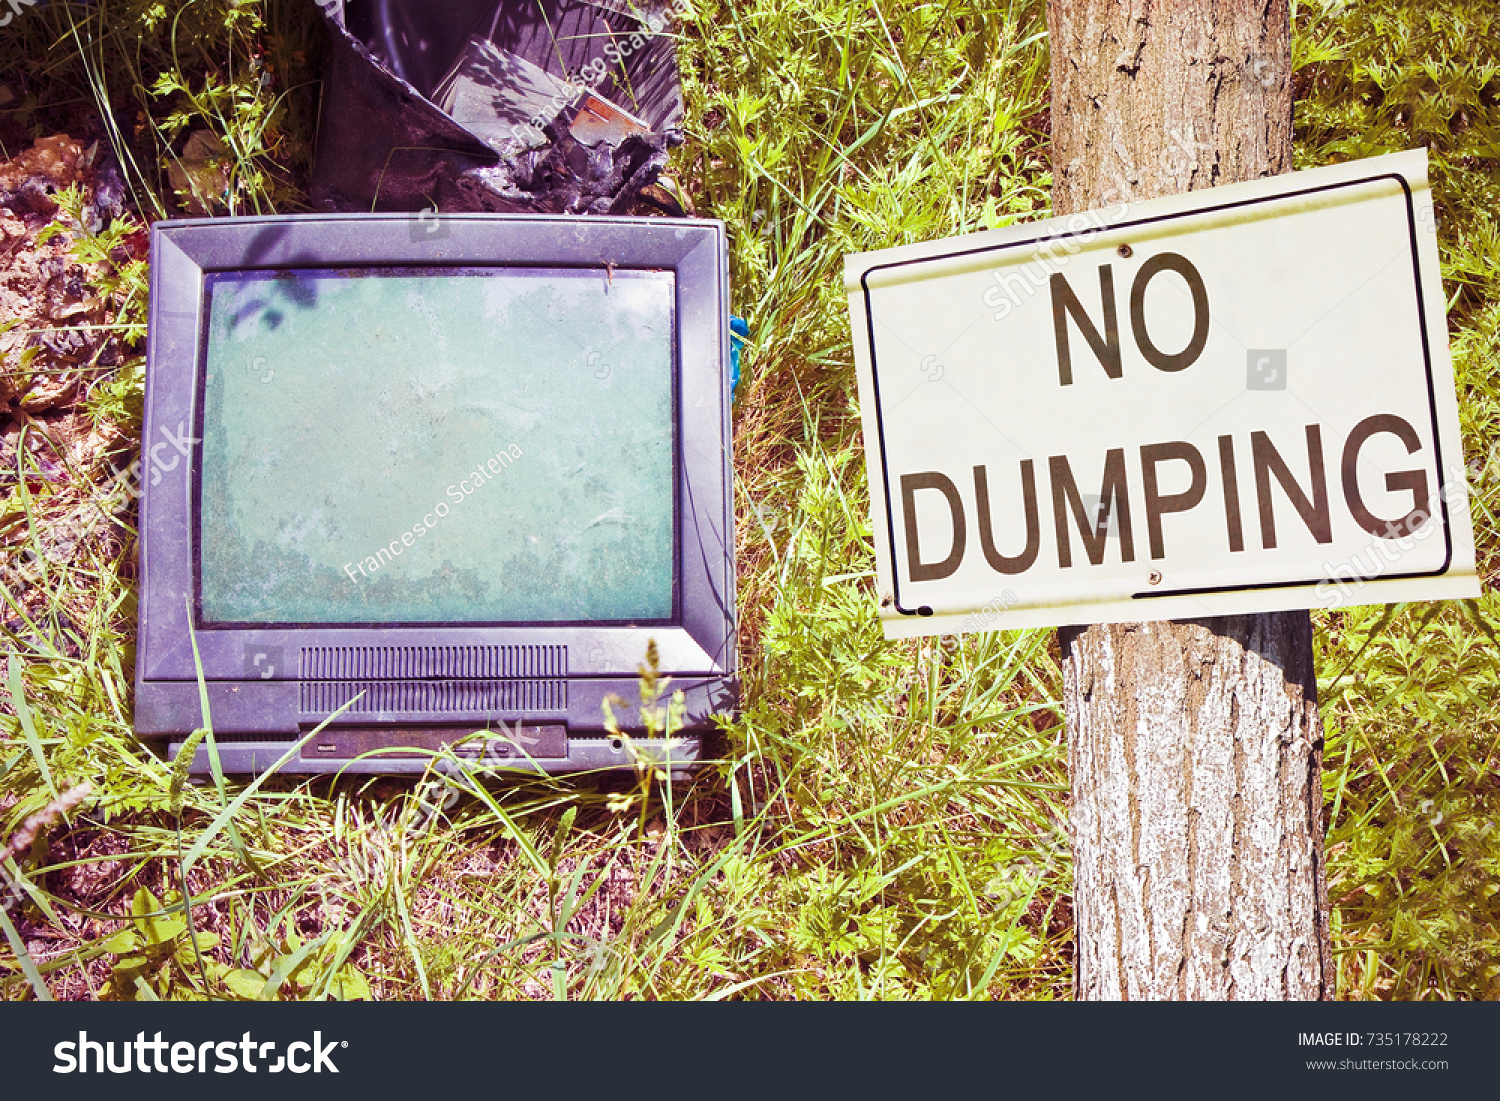 Old Television Crt Cathode Ray Tube Stock Photo Edit Now 735178222 Abandoned In Nature With No Dumping